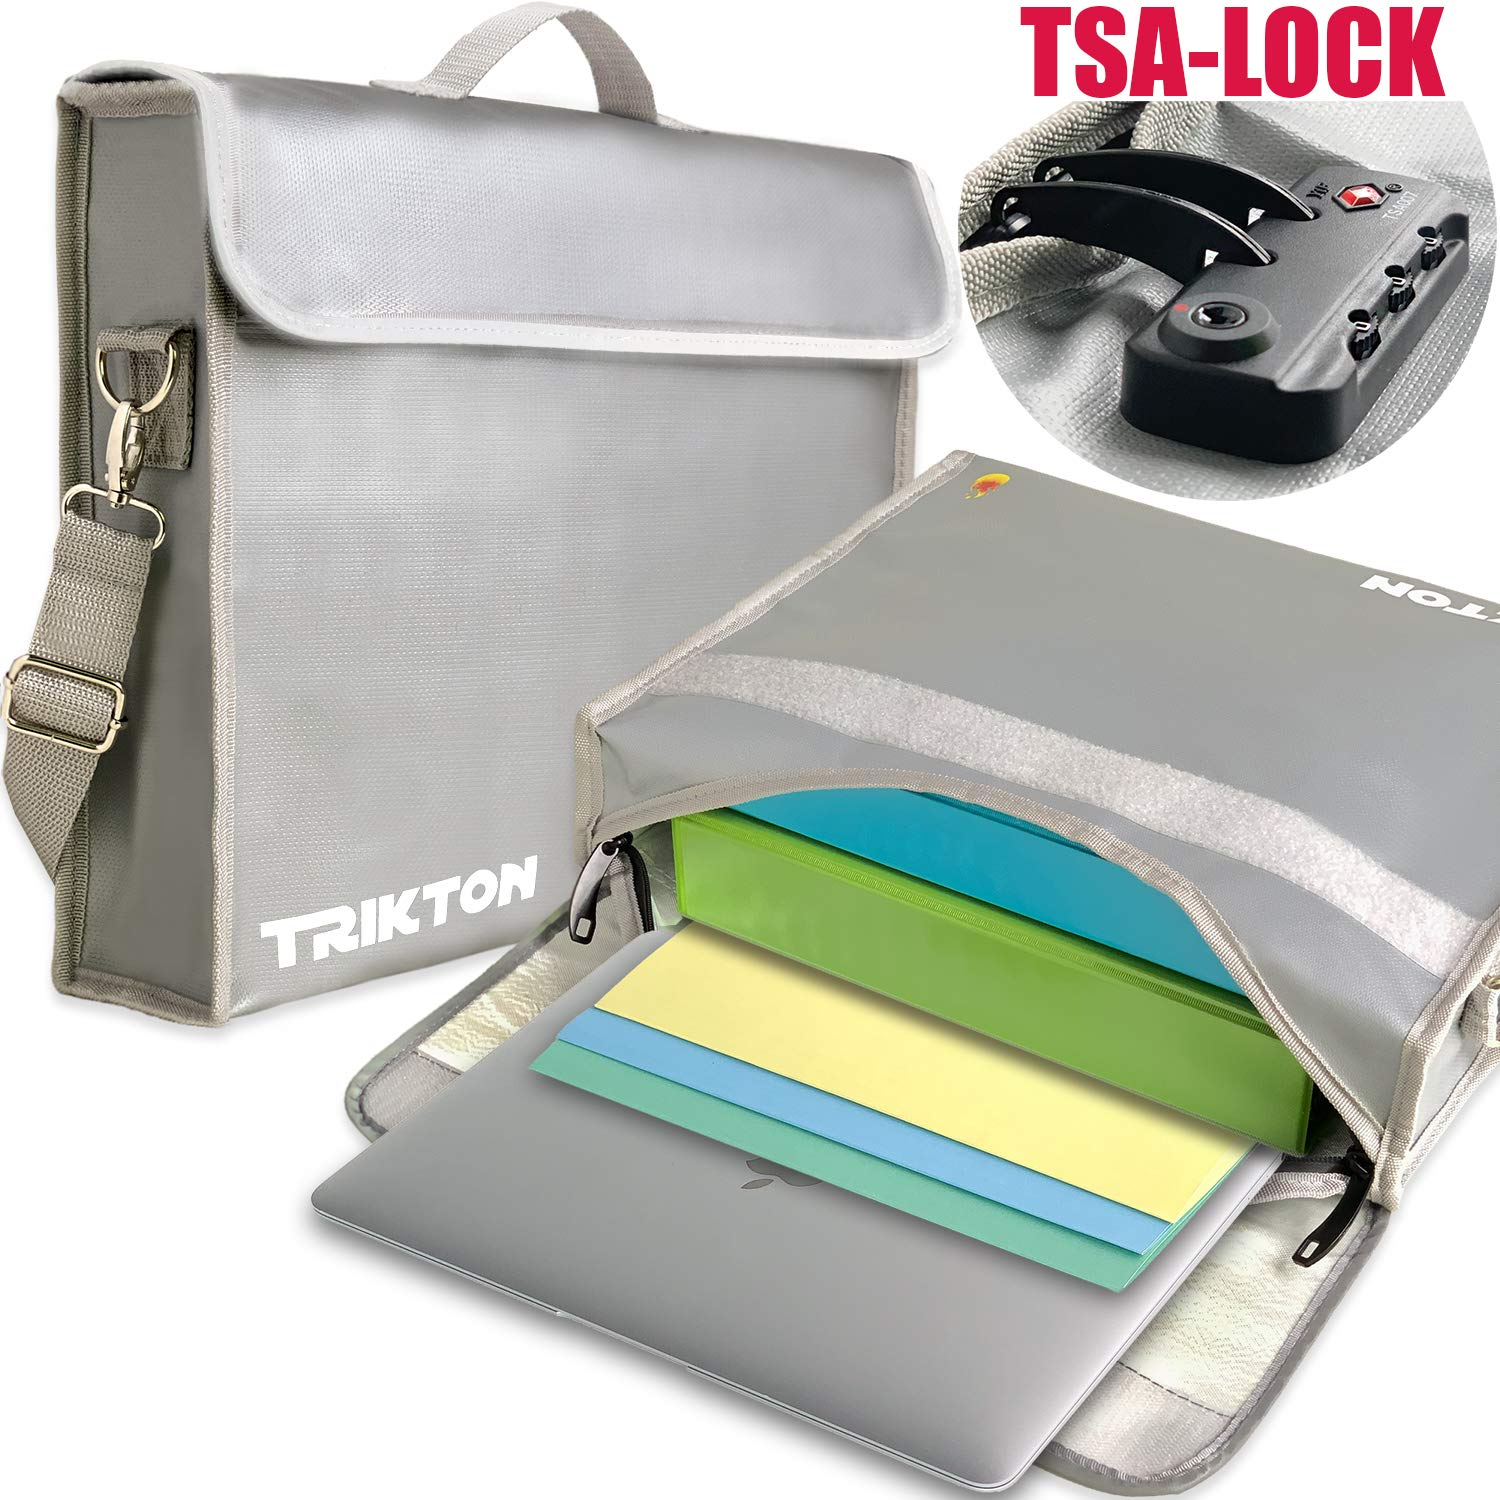 ce4ec500c658 Trikton Fireproof Document Safe Bag with Lock TSA, XL Silver, Visible in  The Dark, Stores Bulky Binders Without Fold Them, X-Large 15x12x3 Fire and  ...